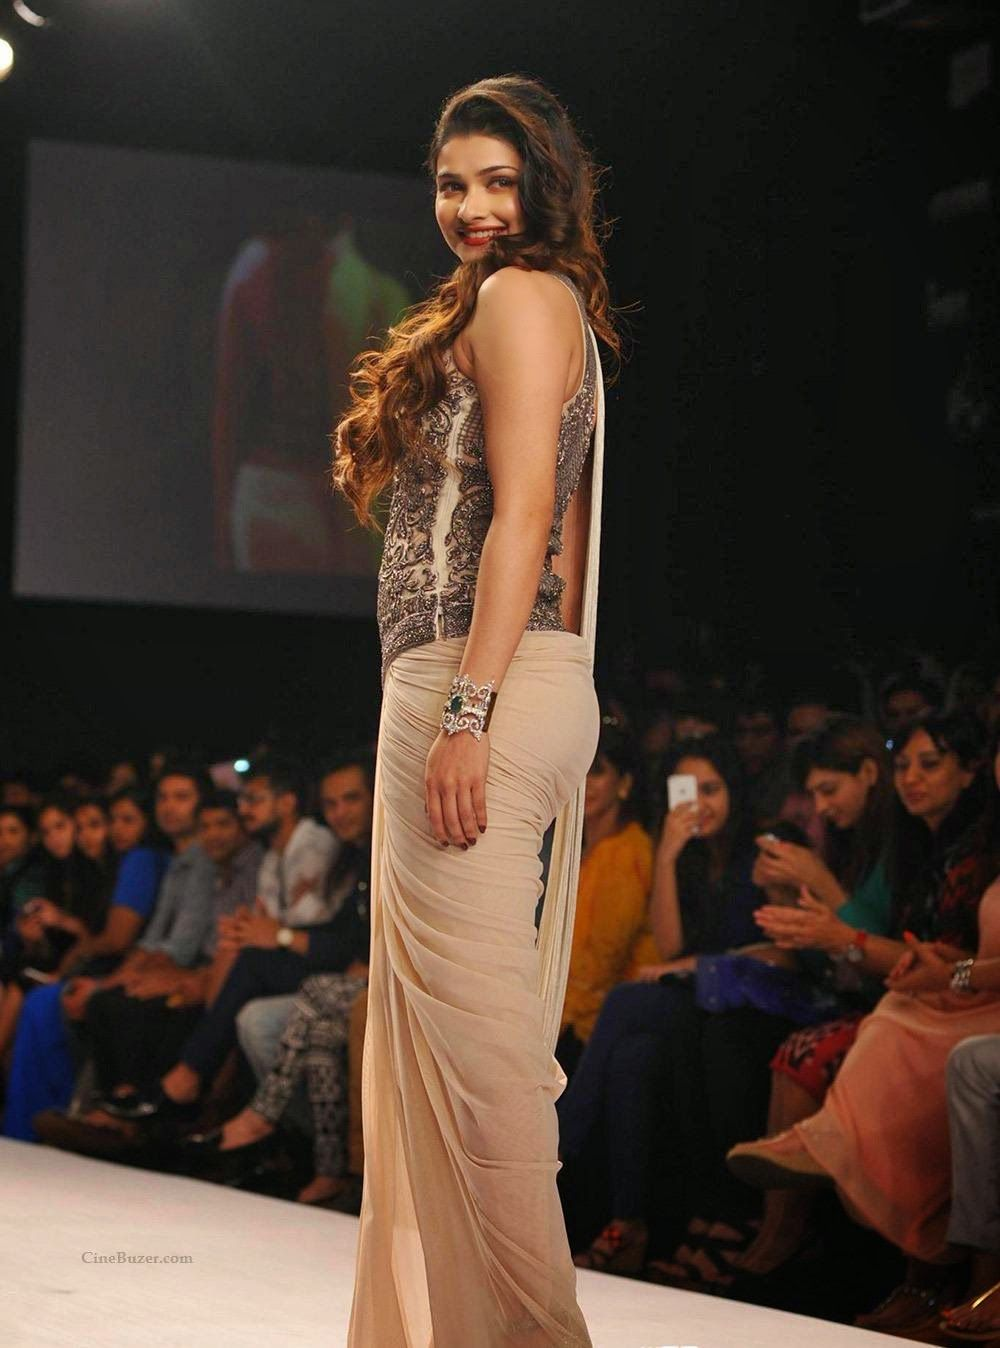 Cool Prachi Desai Hot Ramp Walk Photos At Lakme Fashion Week 2014